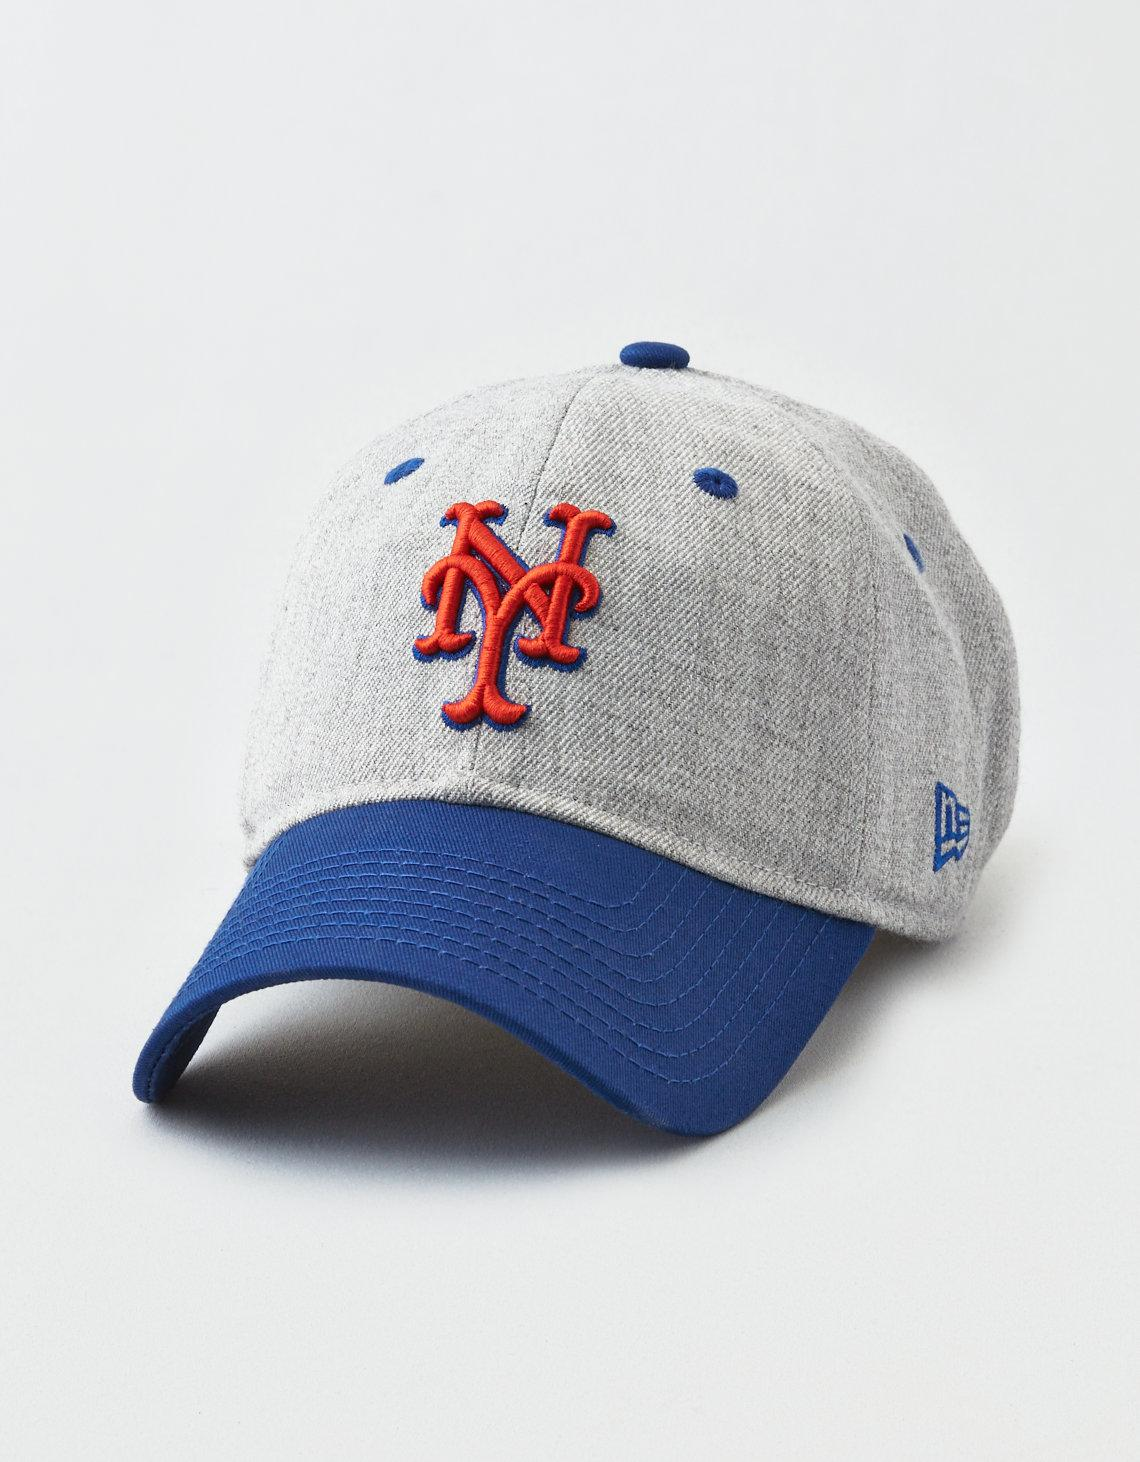 Lyst - Tailgate Limited-edition New Era X Ny Mets Baseball Hat in Gray 325a1d4b4165